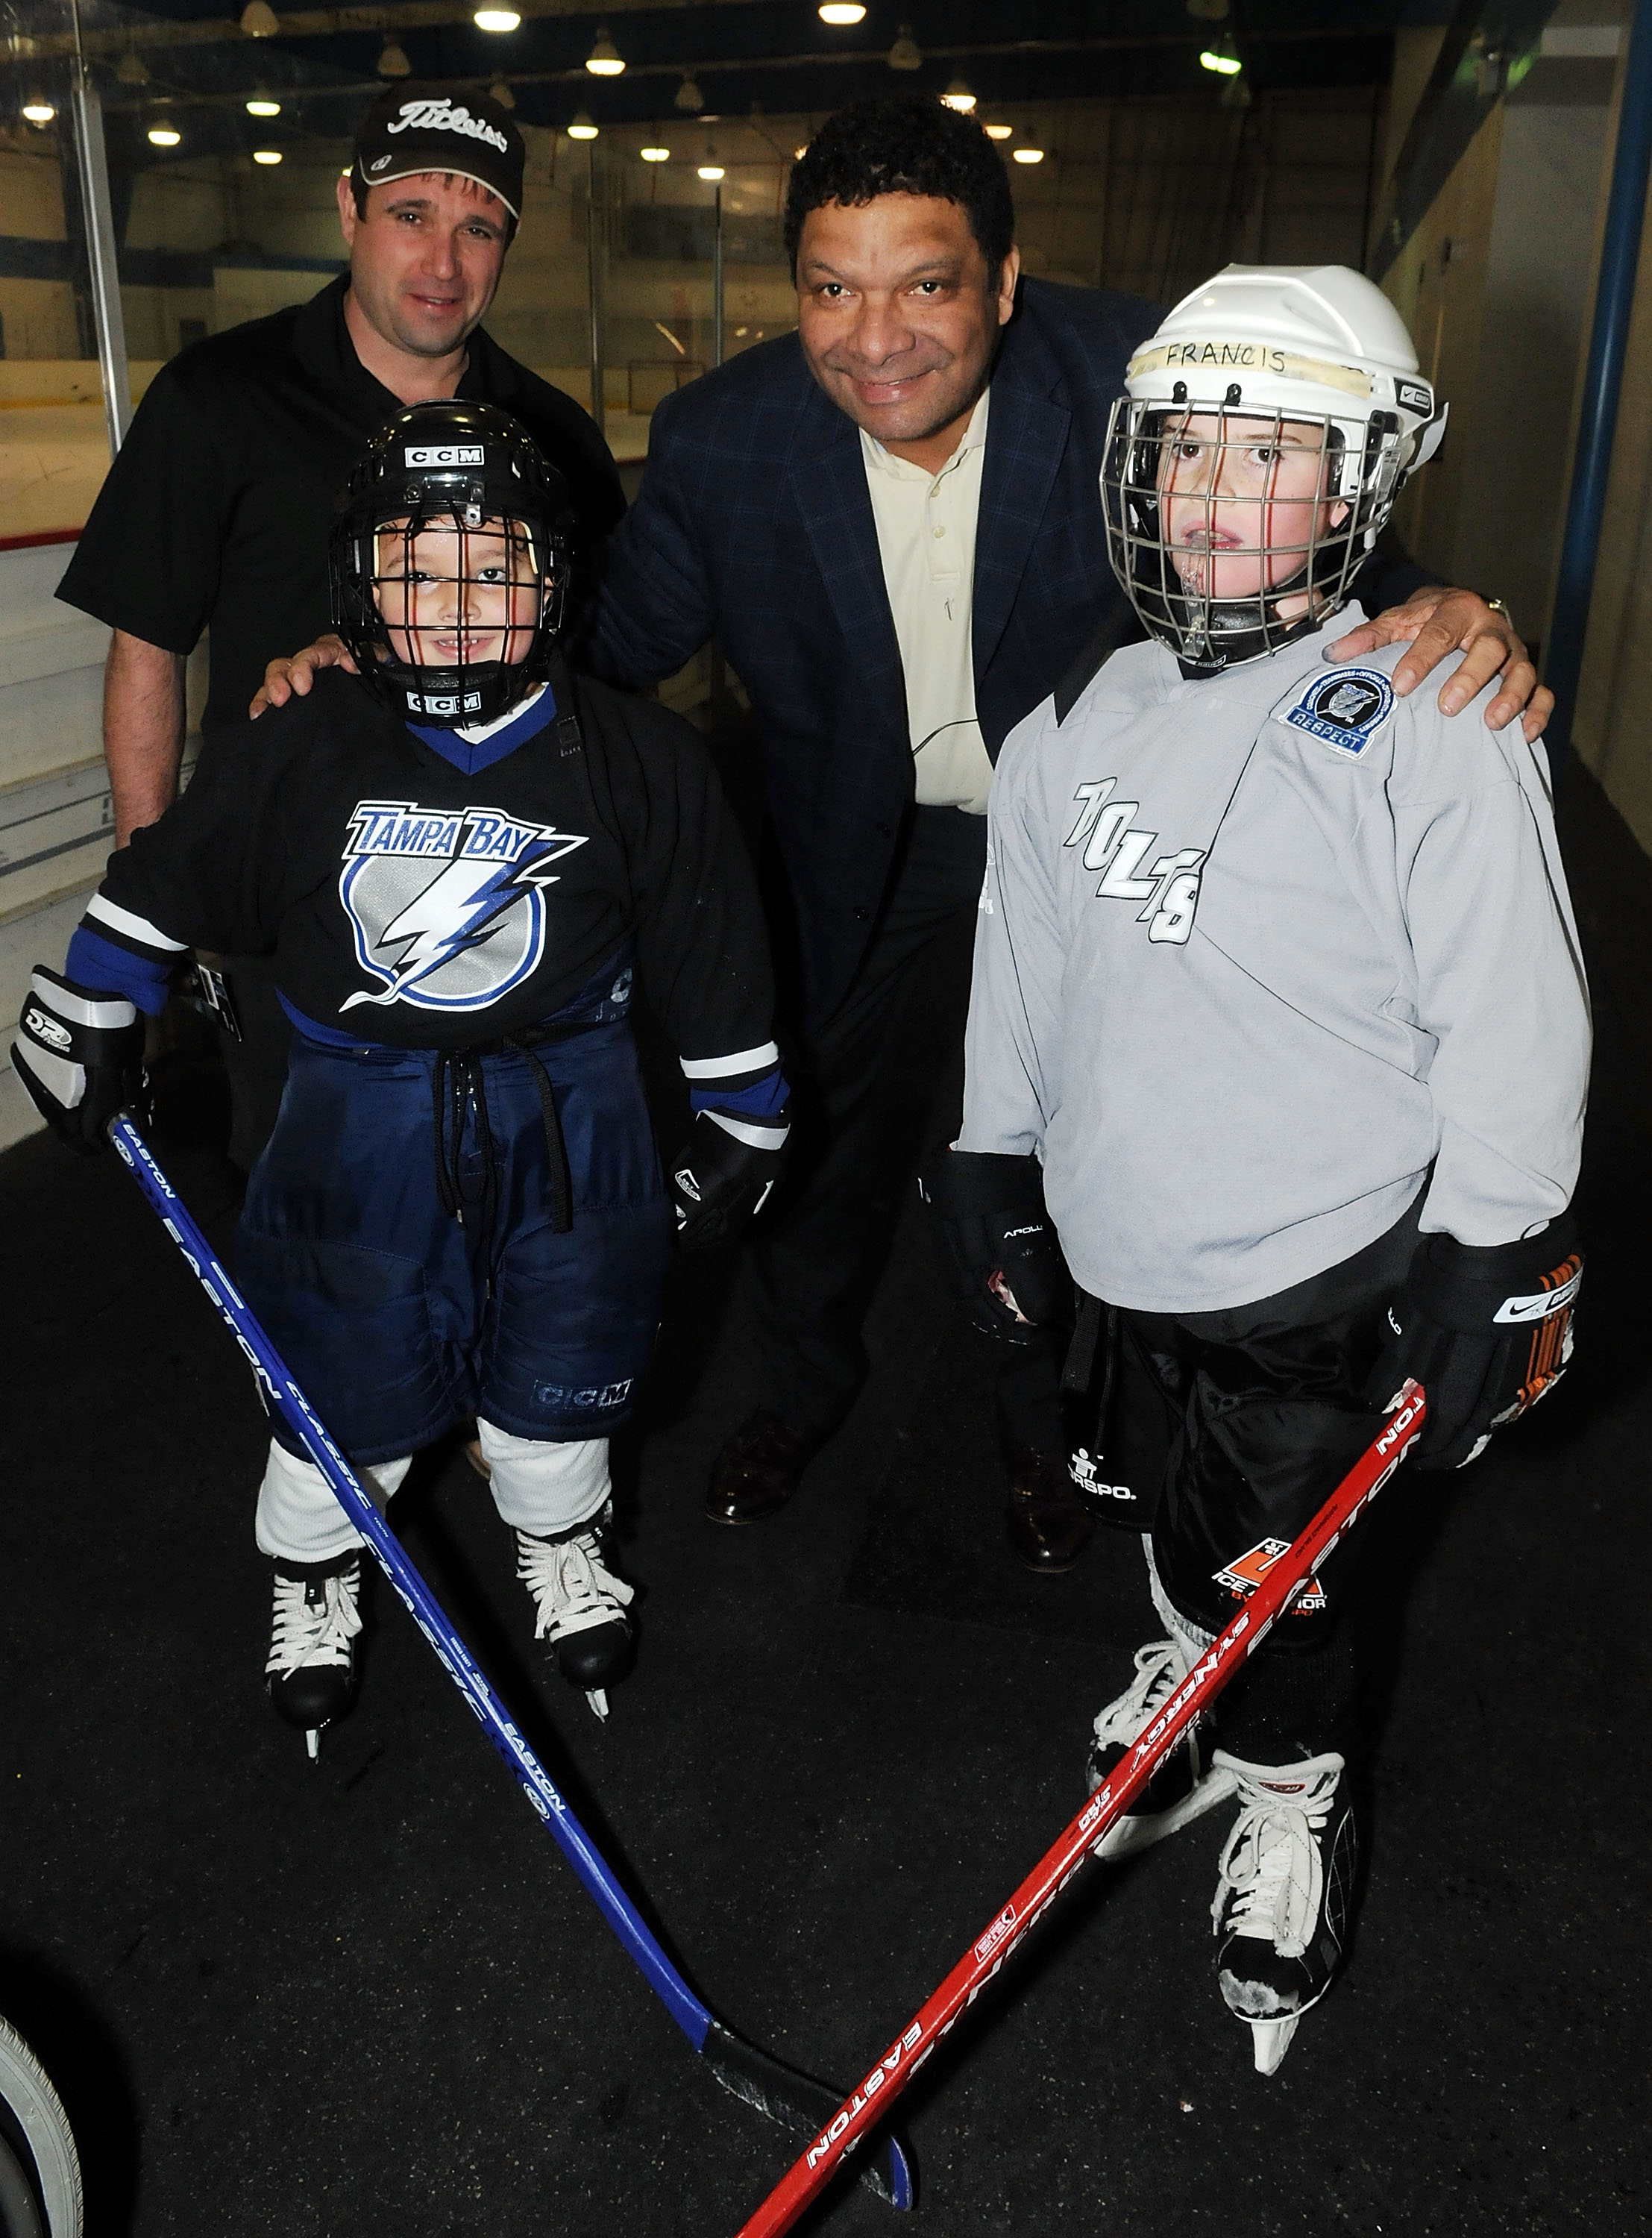 DAYTONA BEACH, FL - MARCH 06:  Tony McKegney (C) pose with kids during the Florida hockey day at the  Daytona Ice Arena on March 6, 2010 in Daytona Beach, Florida.  (Photo by Gerardo Mora/Getty Images for NHL)